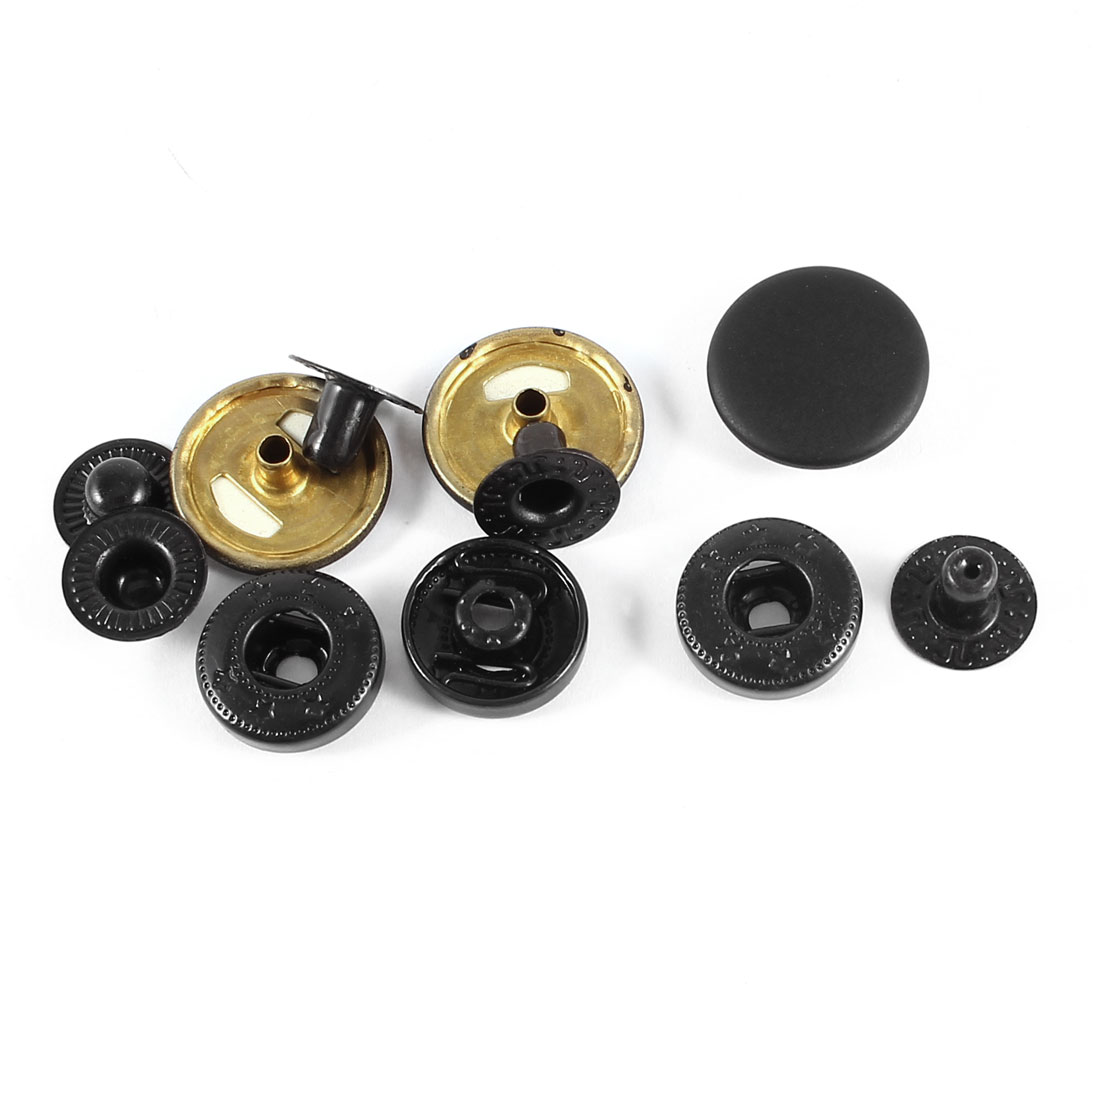 3 Sets 17mm Snap Fasteners Poppers Sewing Leather Button Press Stud Kit Tool